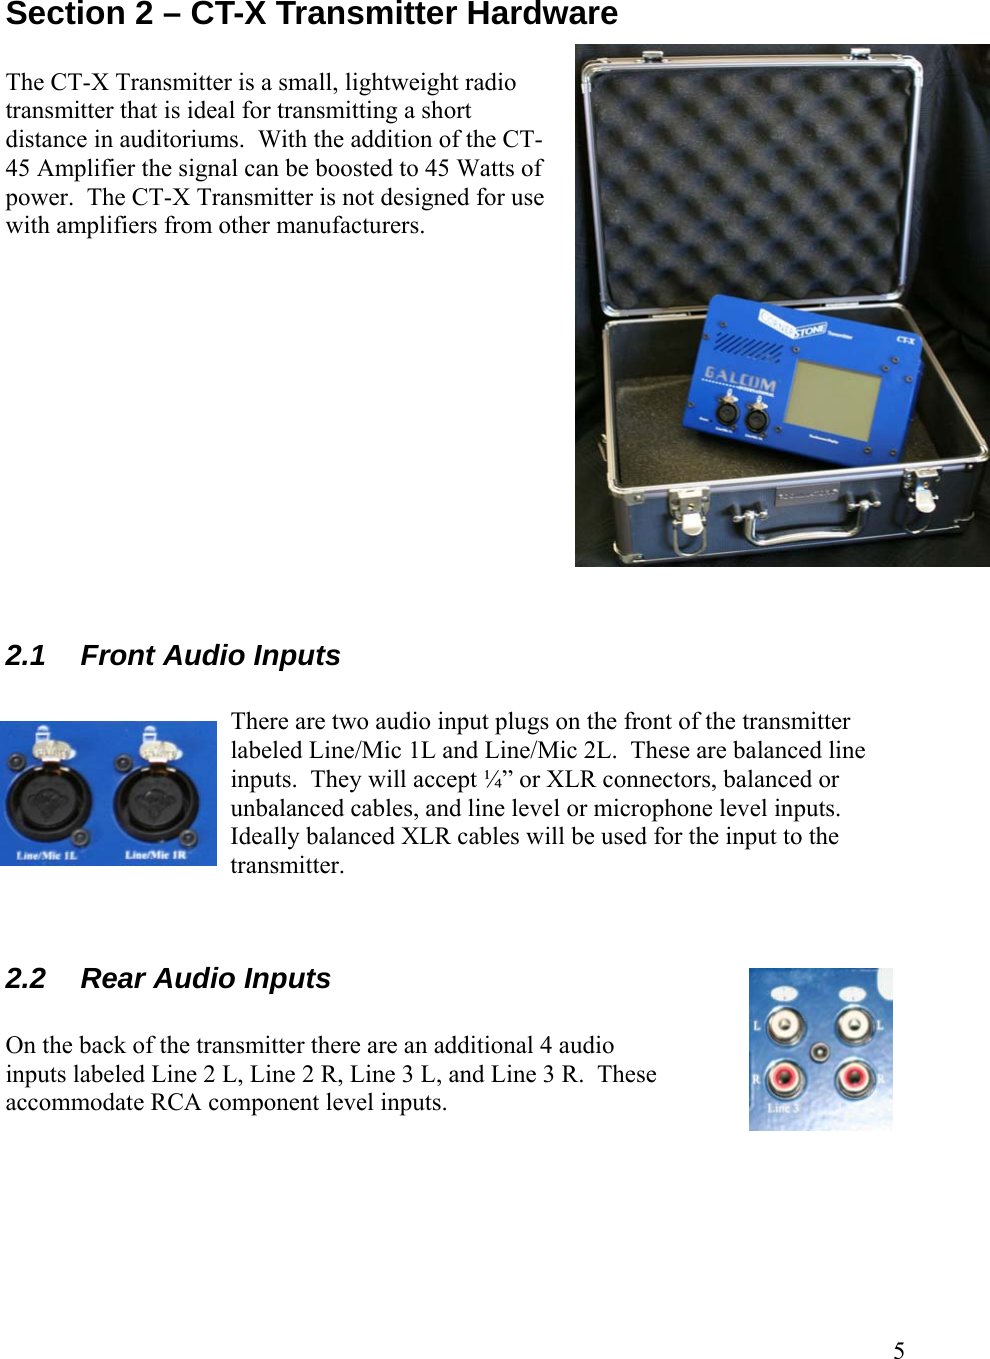 Galcom Ct 45 Watt Fm Broadcast Transmitter User Manual 5 Amplifier Section 2 X Hardware The Is A